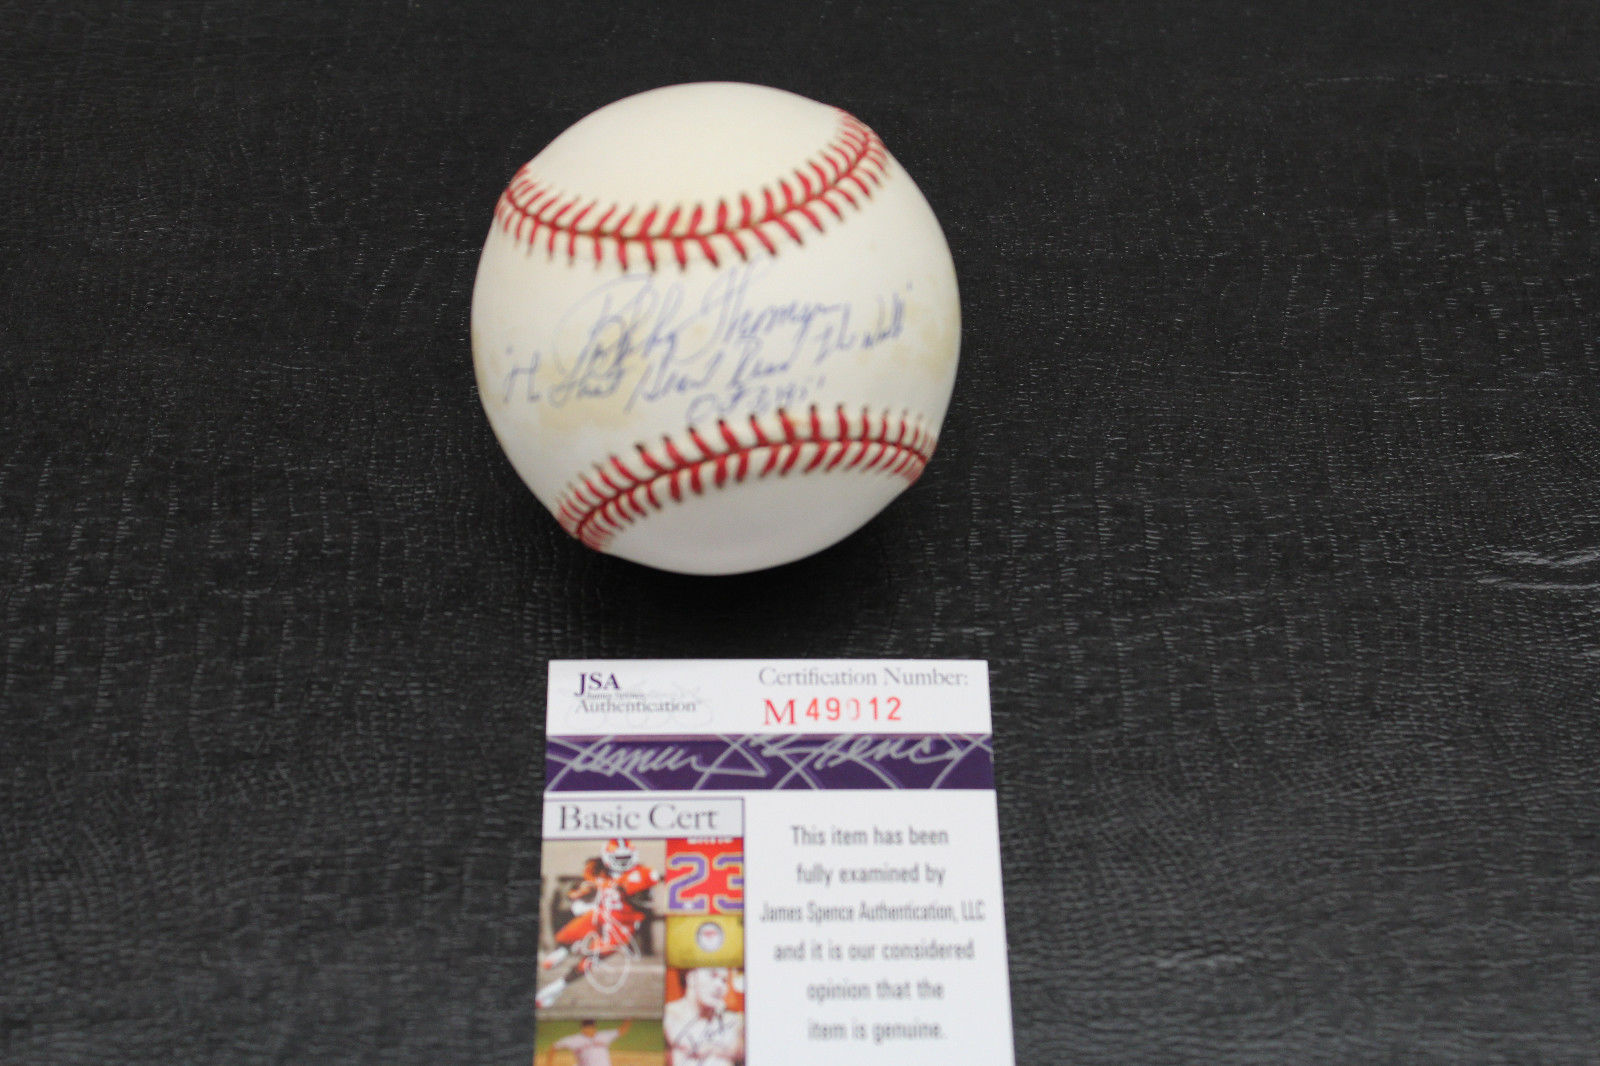 Primary image for BOBBY THOMSON Signed ONL Baseball INSCRIBED SHOT HEARD ROUND THE WORLD JSA COA